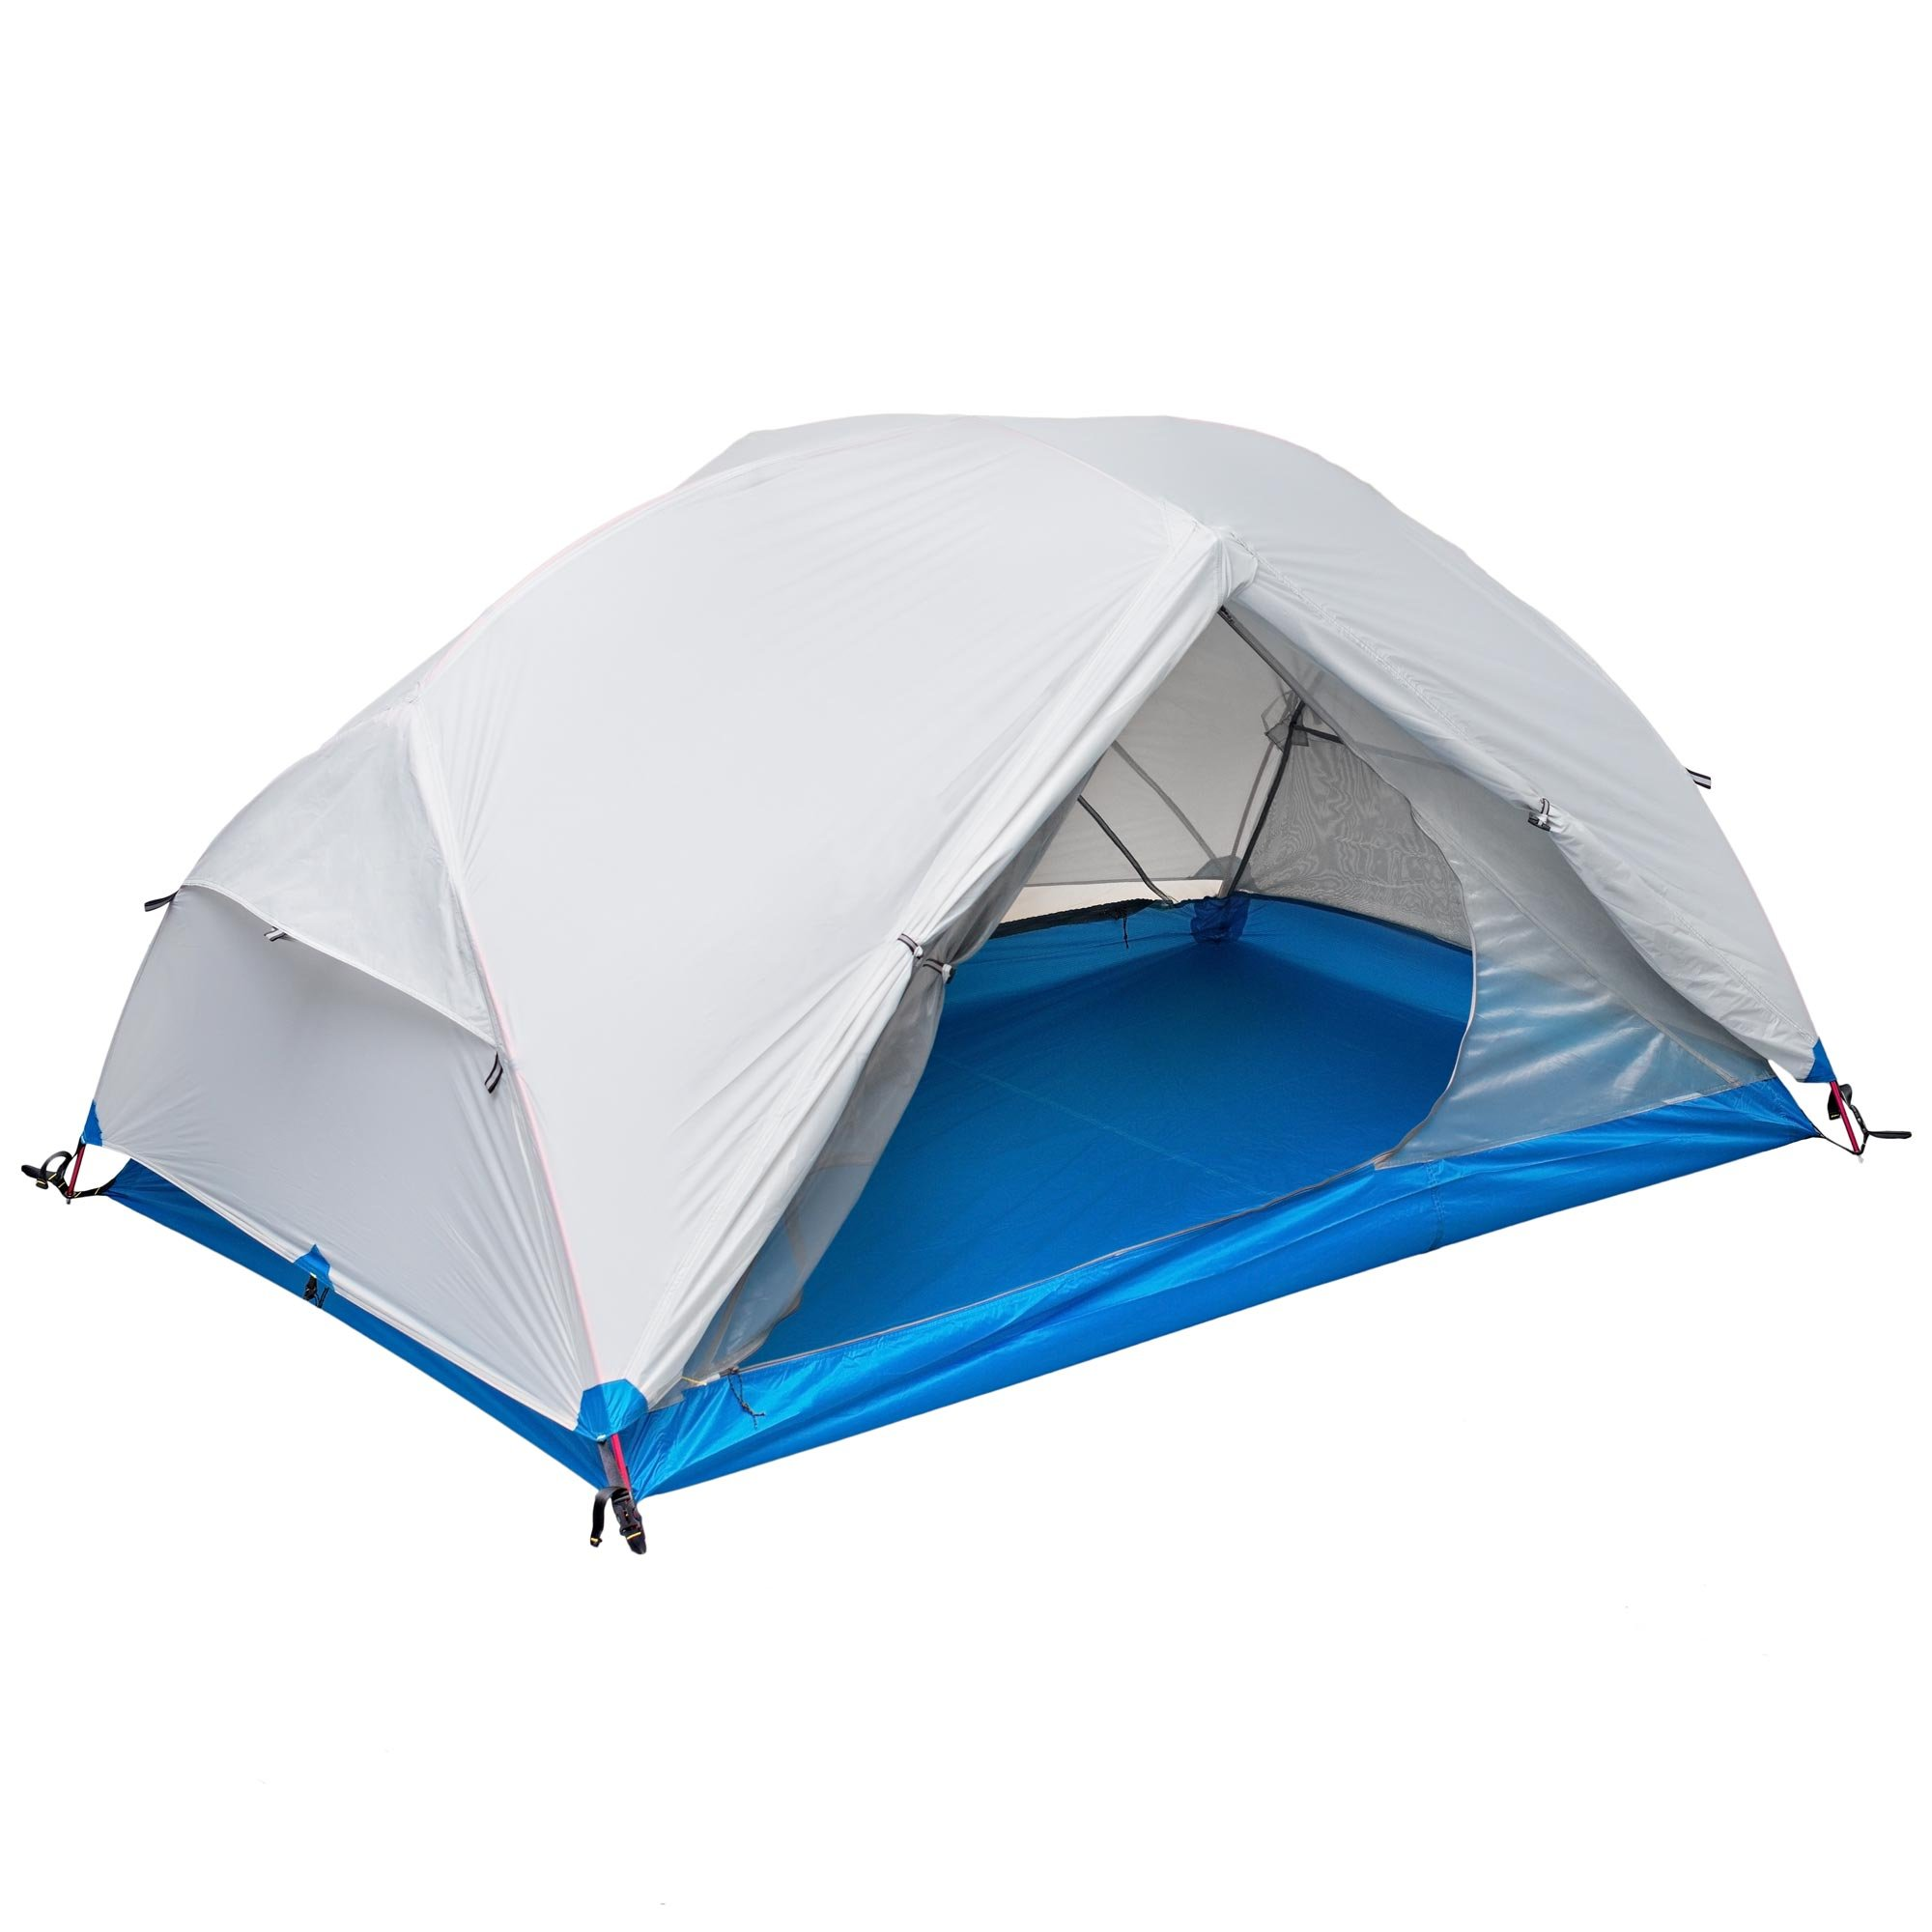 Zion 2P Two Person Lightweight Tent and Footprint - Perfect for Backpacking, Kayaking, Camping and Bikepacking by Paria Outdoor Products (Image #2)